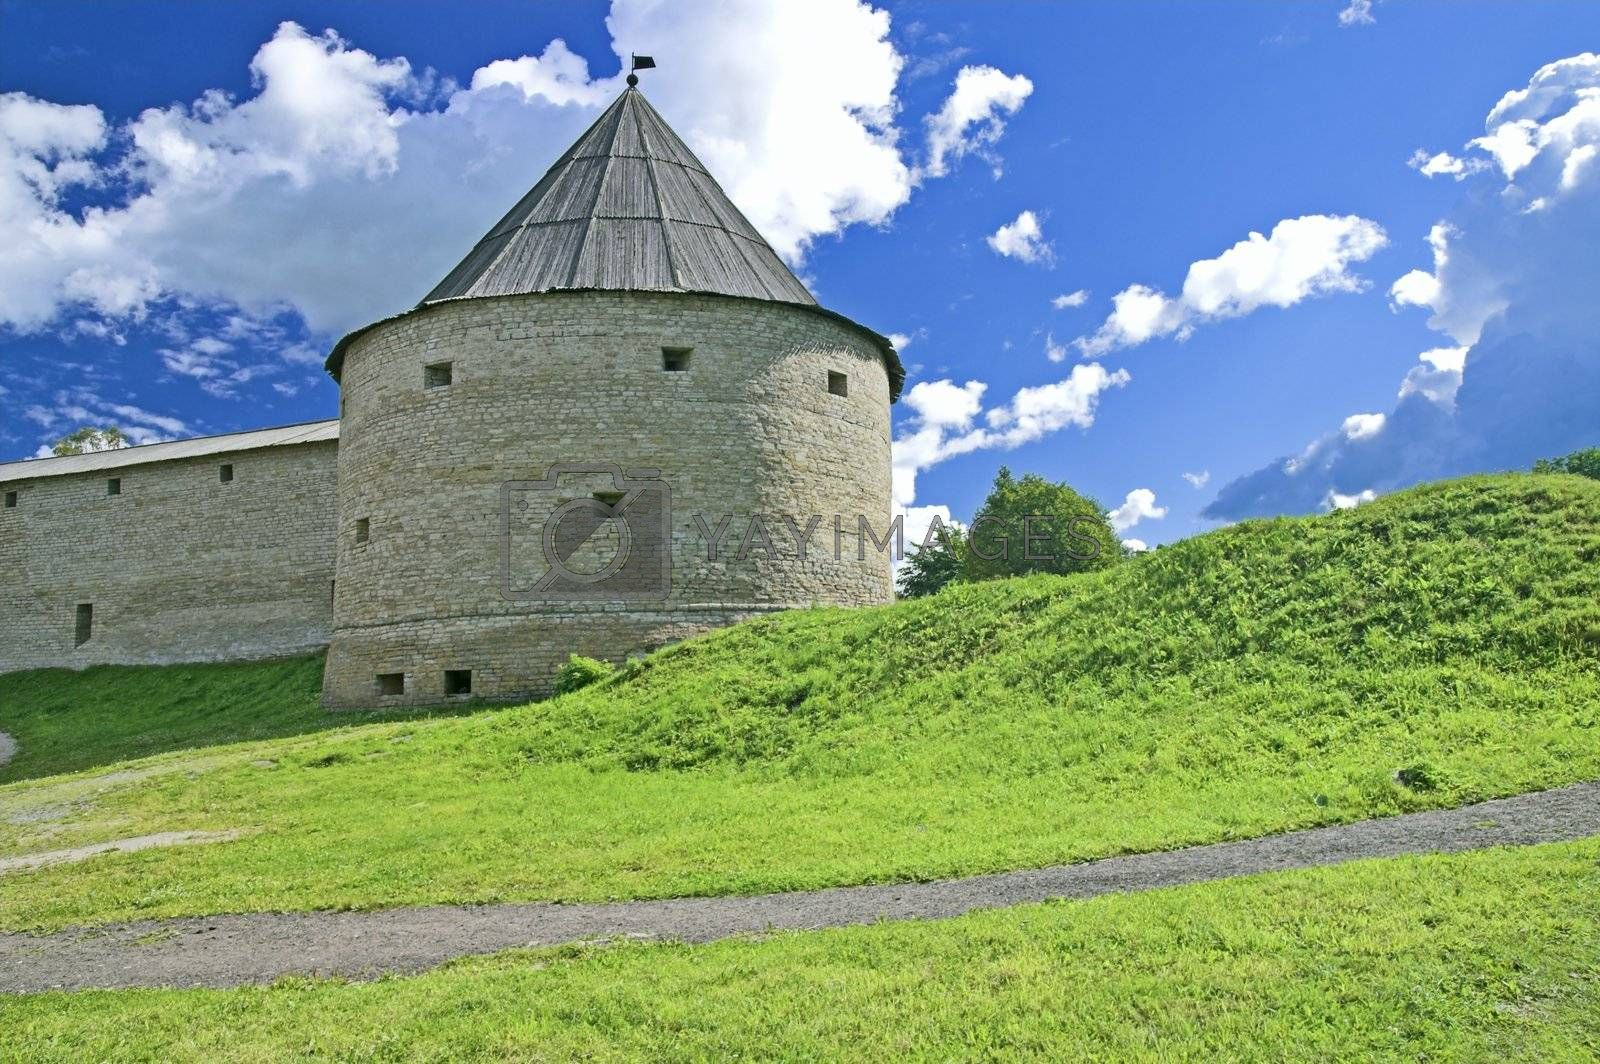 Fortress Tower in Ancient Russian Capital of Old Ladoga